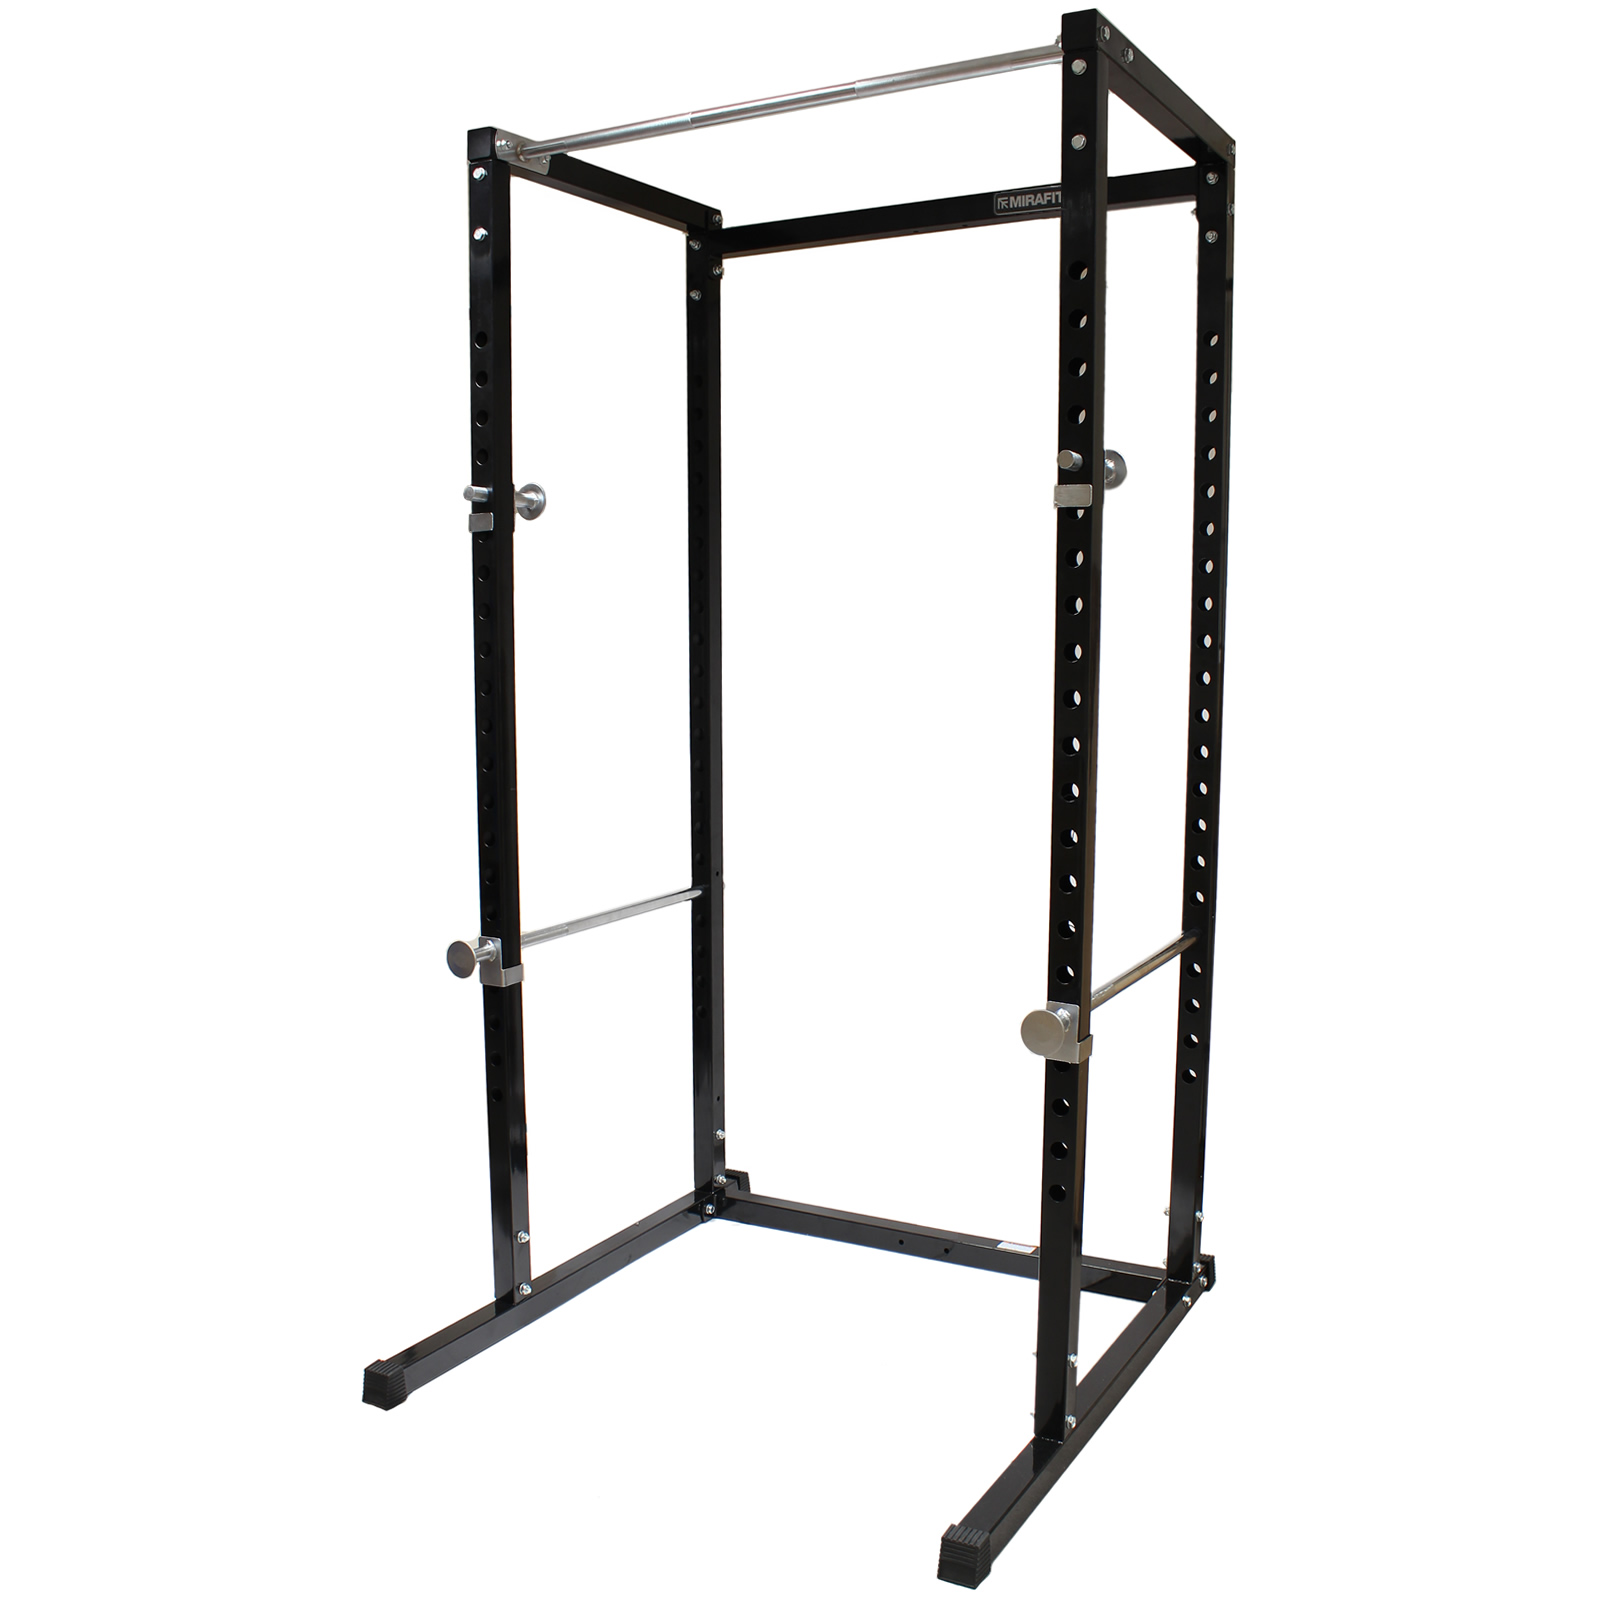 mirafit power cage squat rack pull up bar multi gym weight lifting stand black 5051990706347. Black Bedroom Furniture Sets. Home Design Ideas